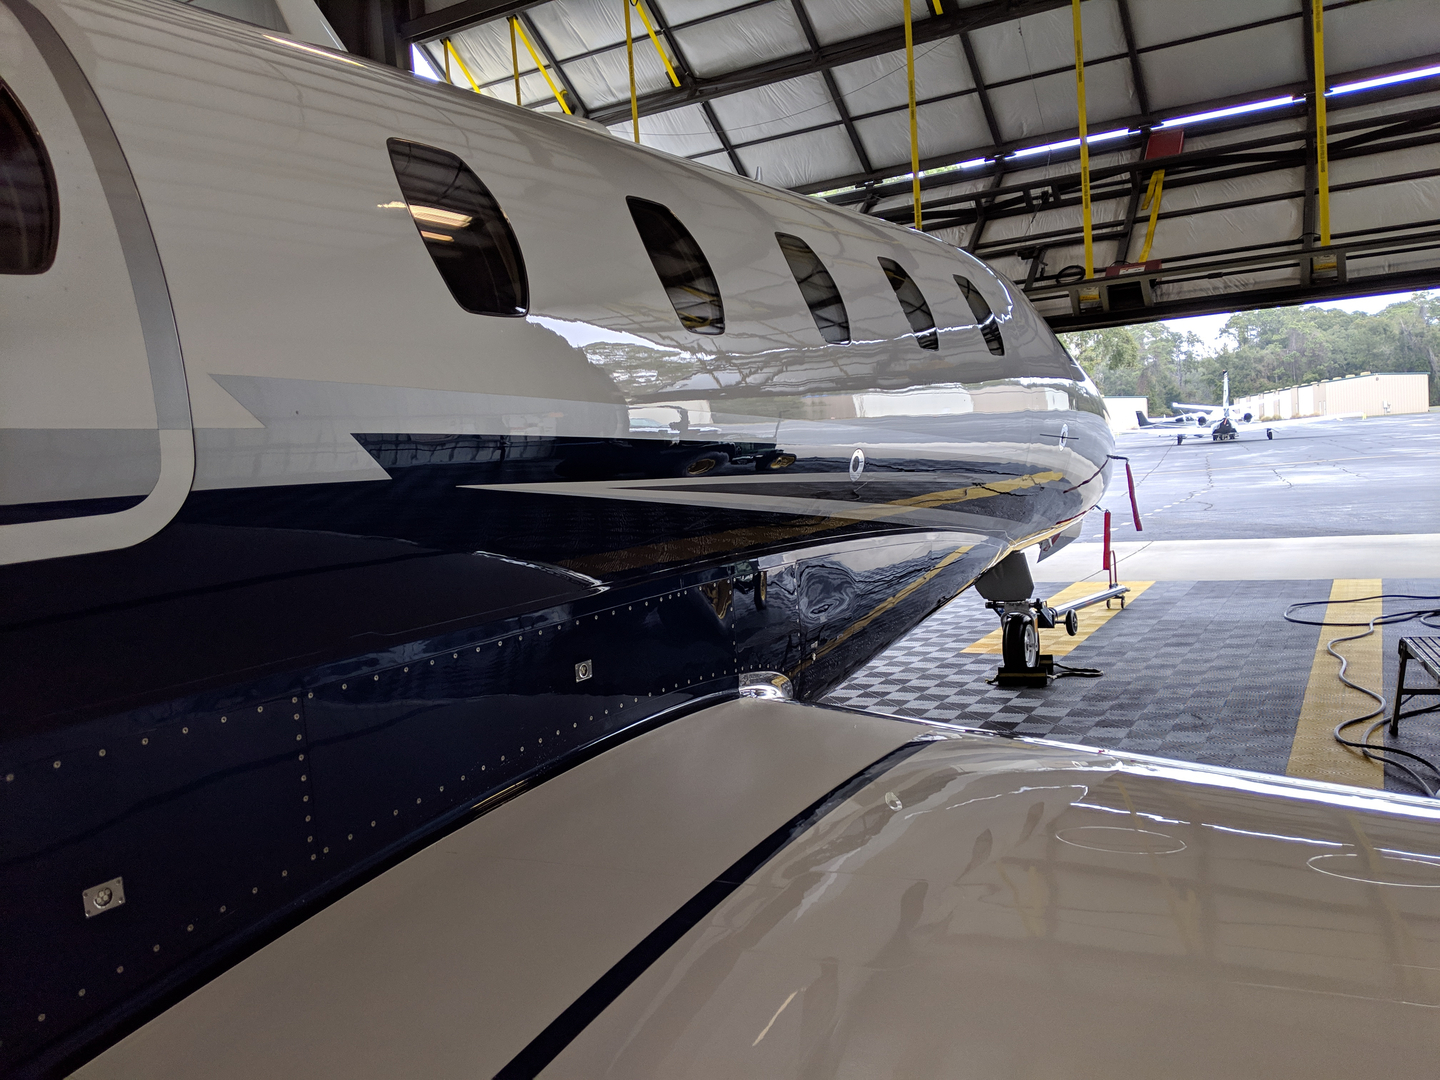 Aircraft Cleaning, Aircraft Painting - Johnson Aviation Services